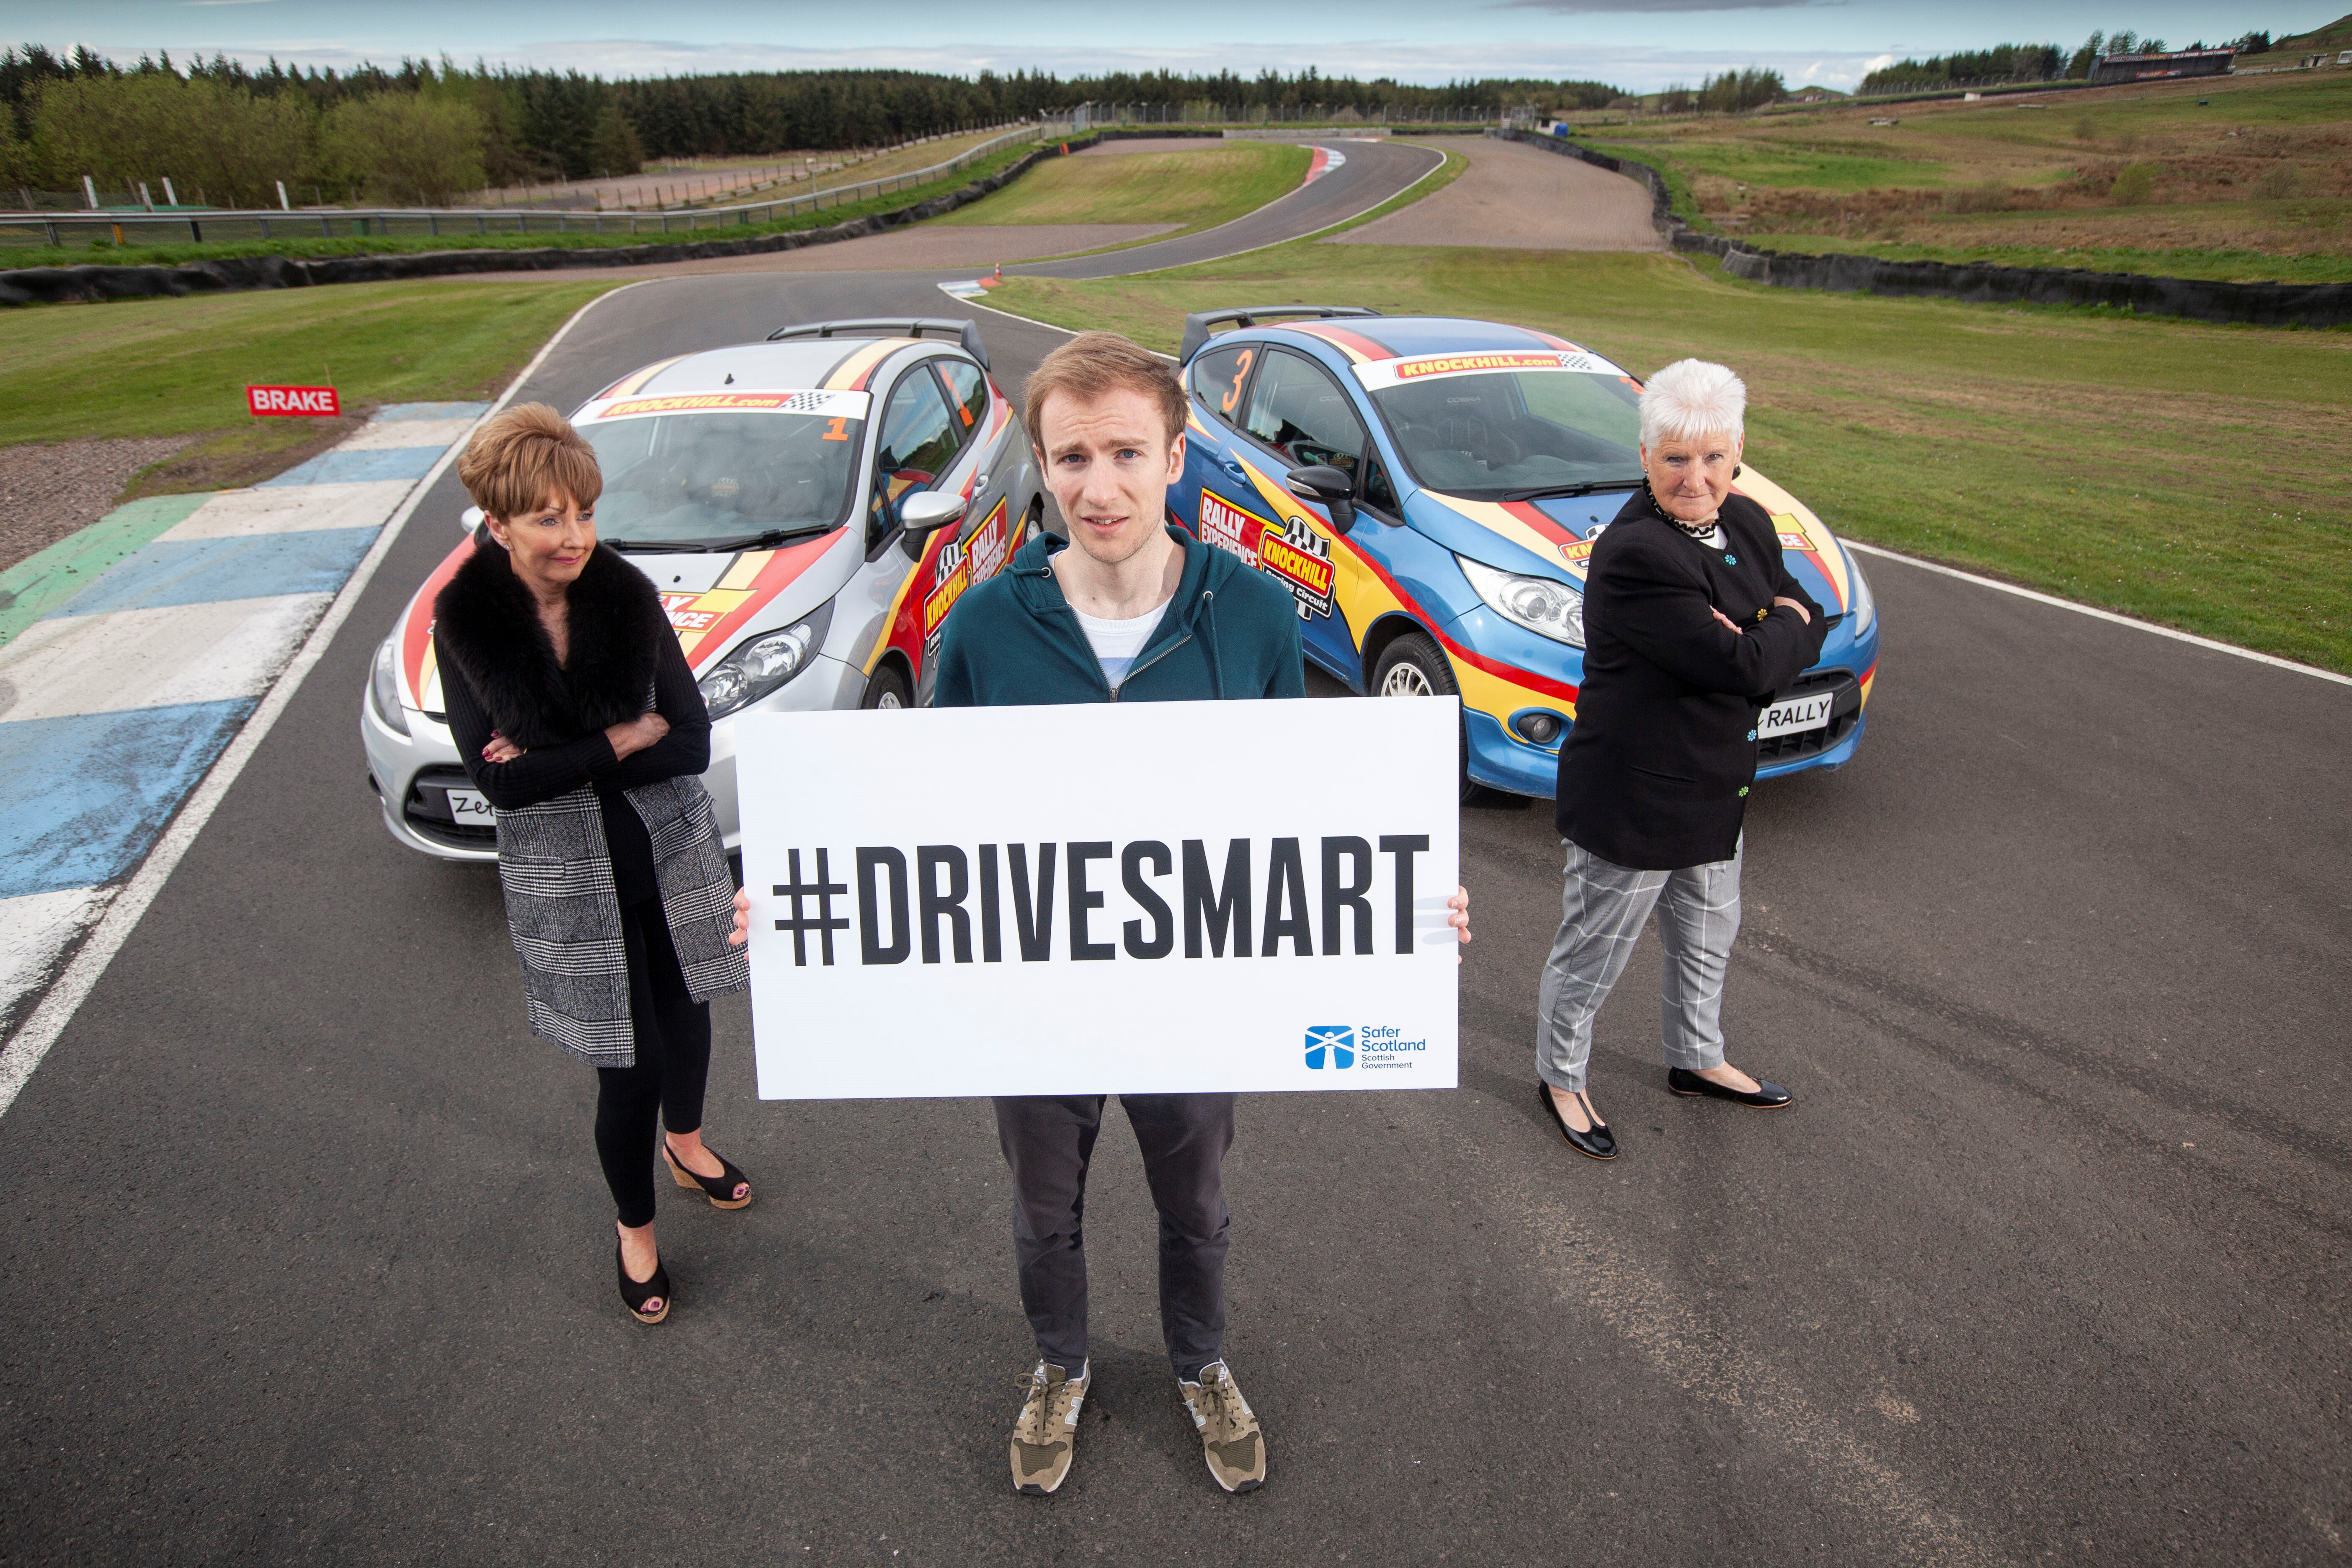 Drive like Gran's in the car has been launched as part of the #DriveSmart campaign